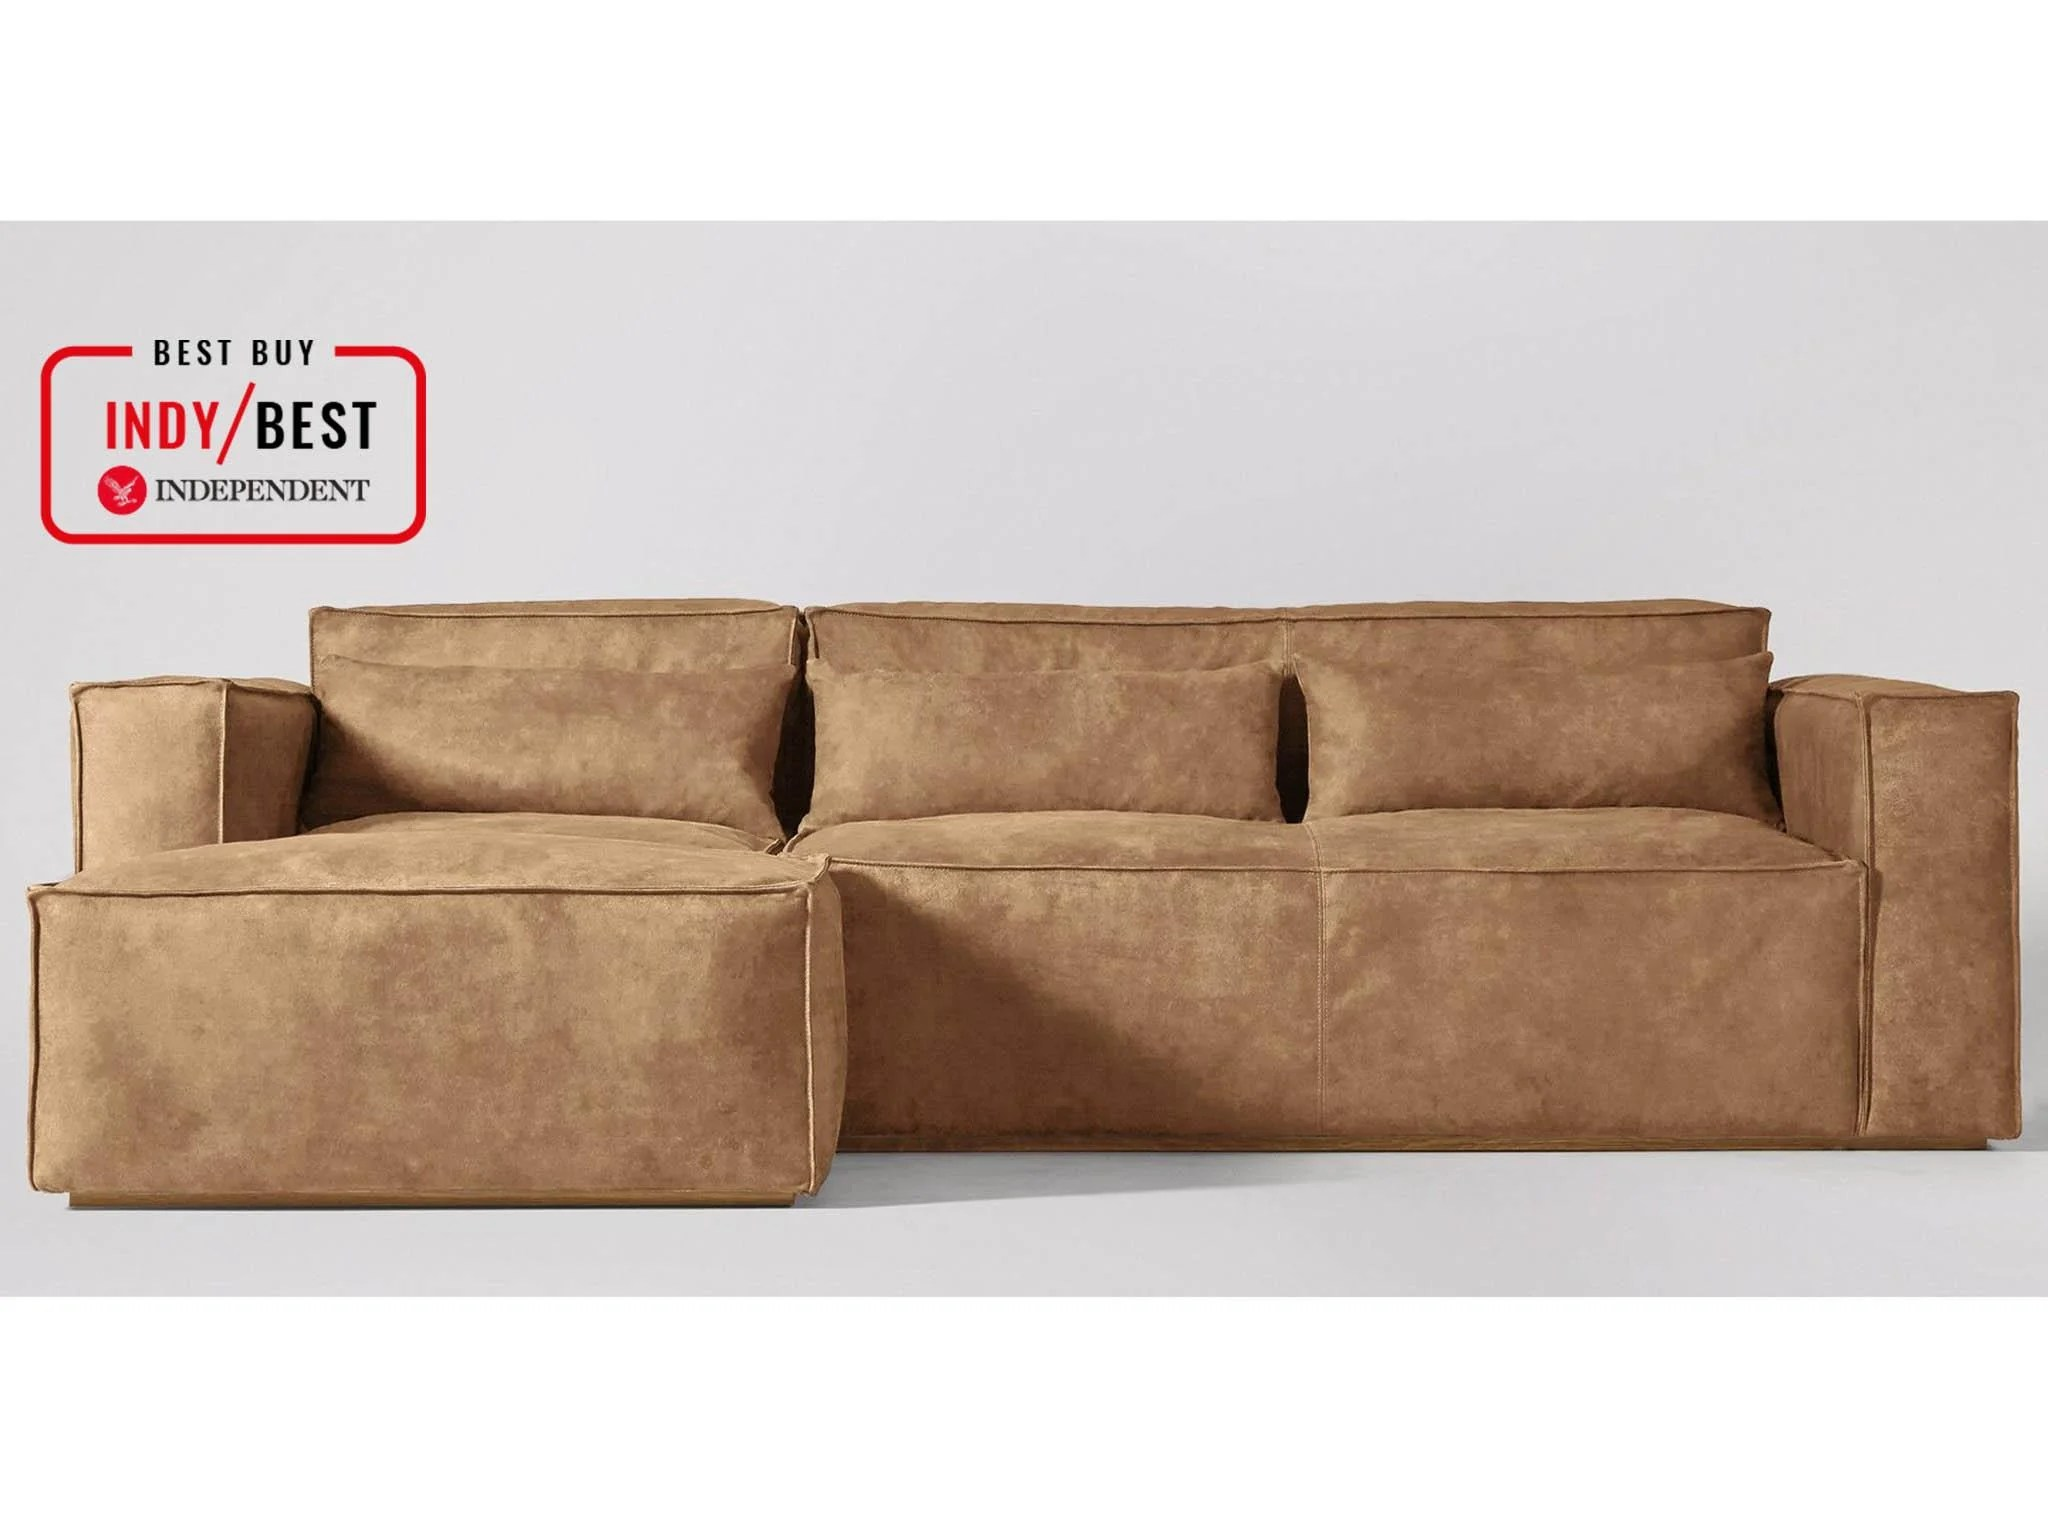 Sofa Wholesalers Uk 10 Best Leather Sofas The Independent